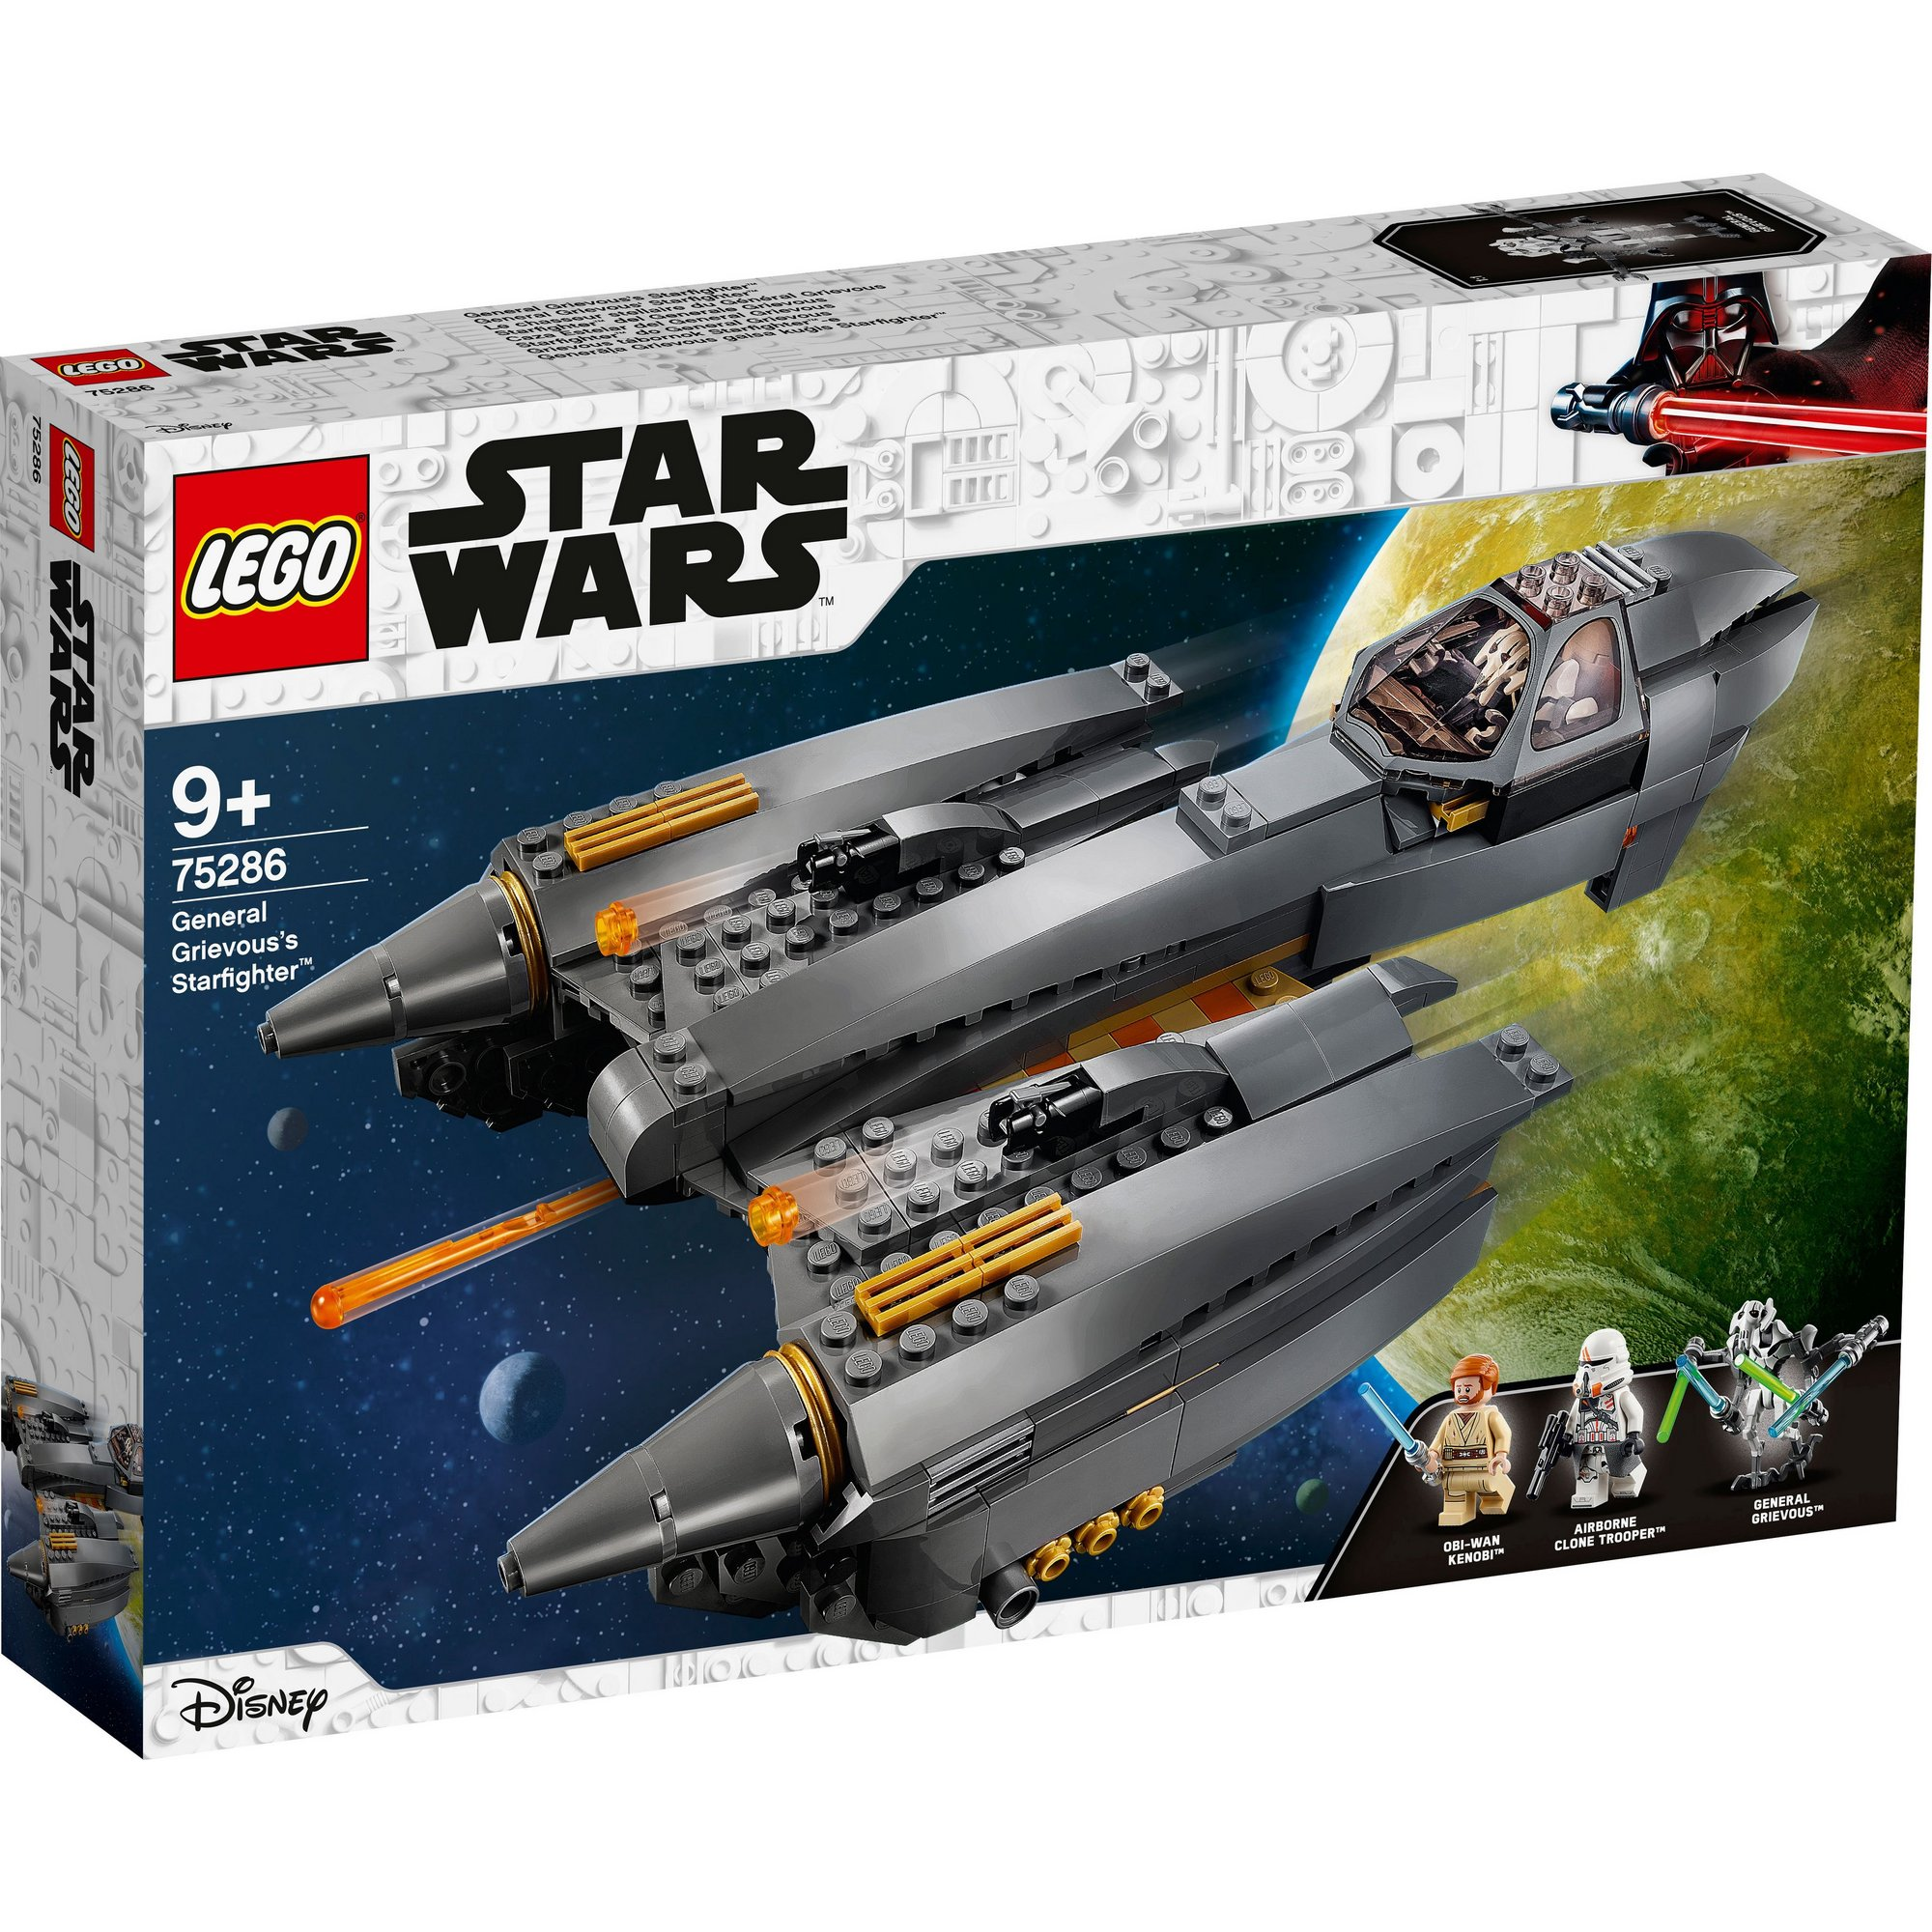 Image of LEGO Star Wars General Grievous Starfighter